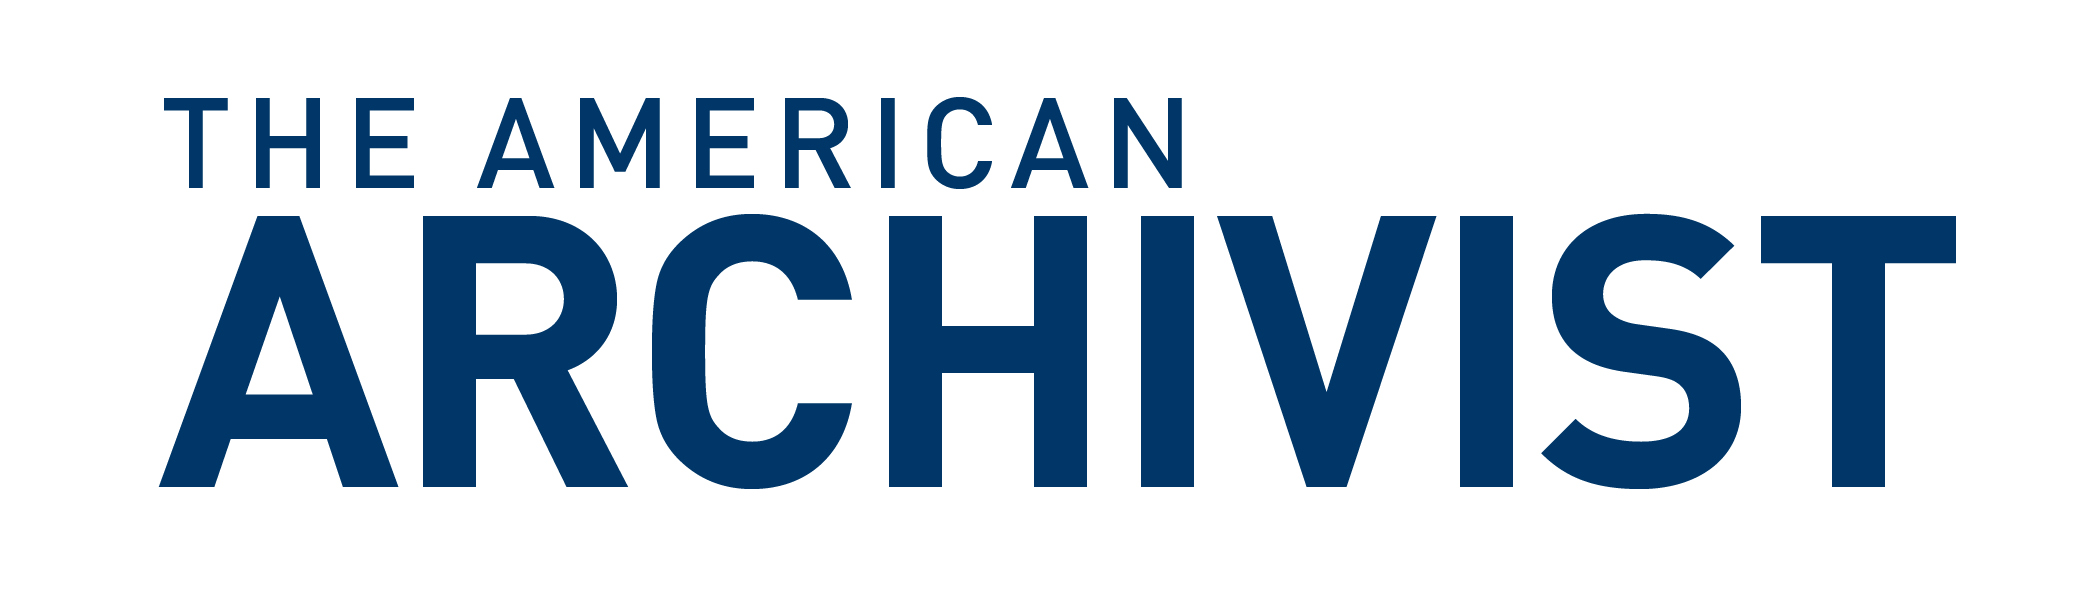 The American Archivist Logo